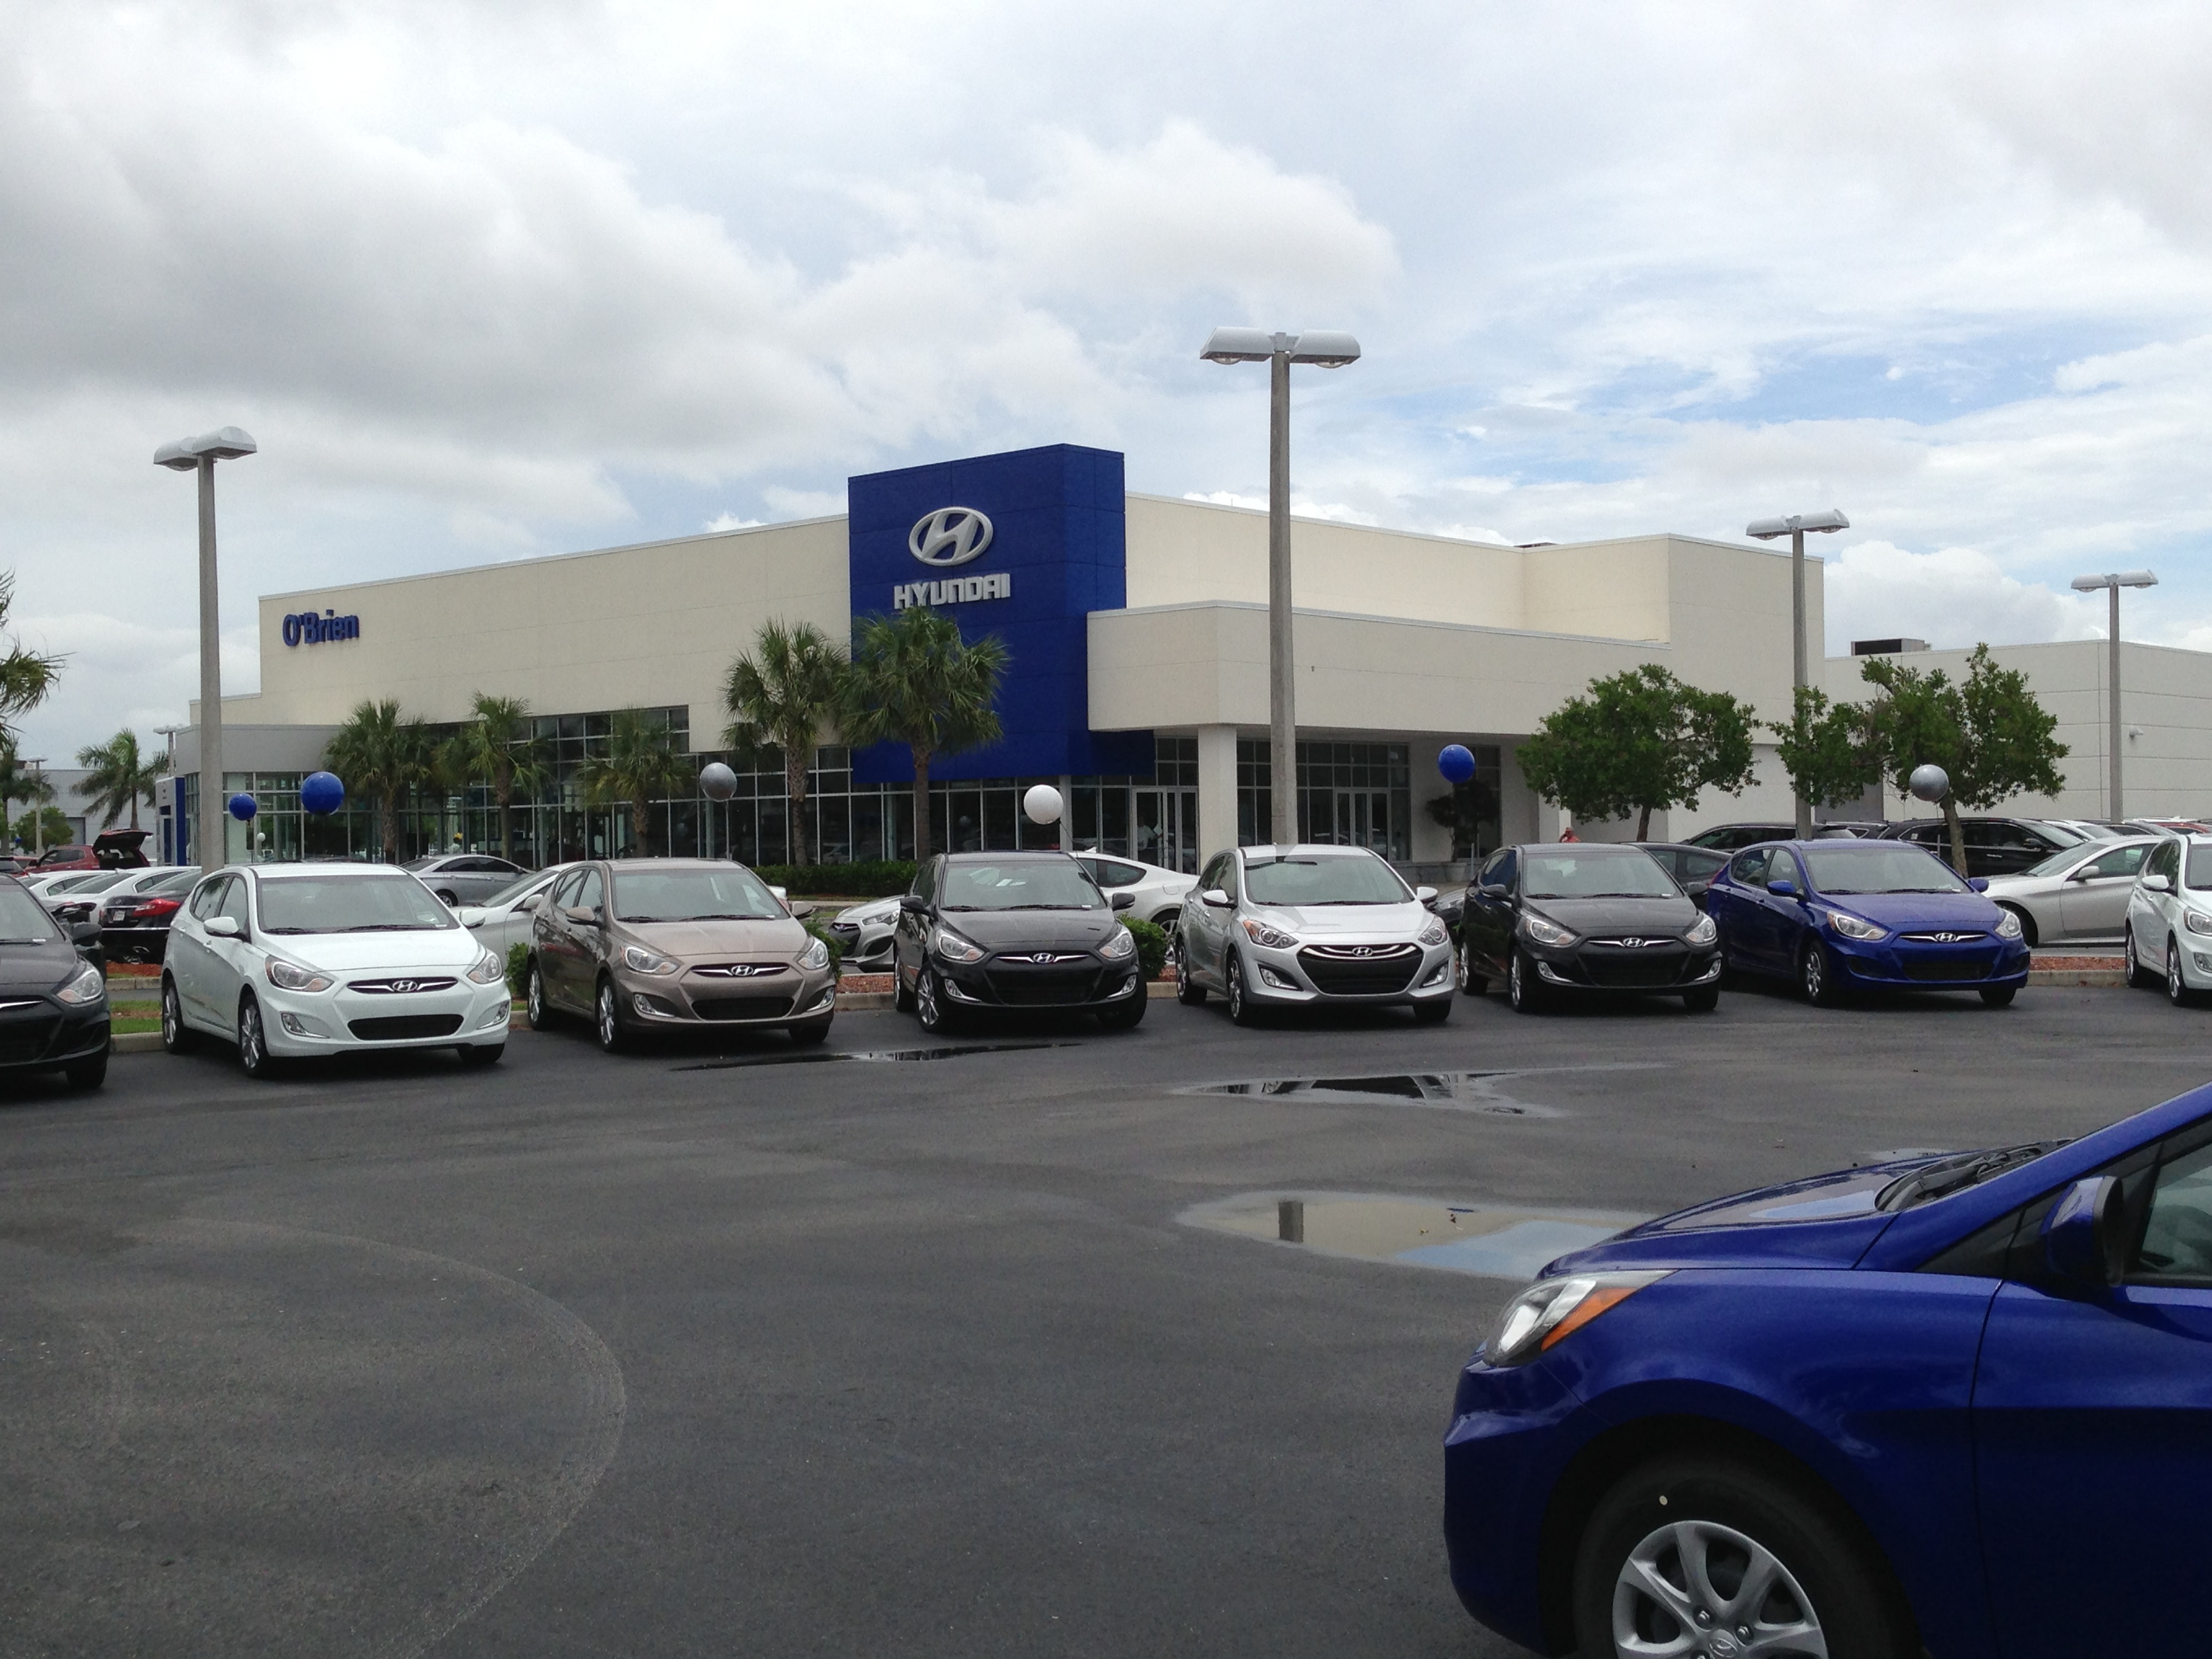 O brien Auto 2850 Colonial Blvd Fort Myers FL YP